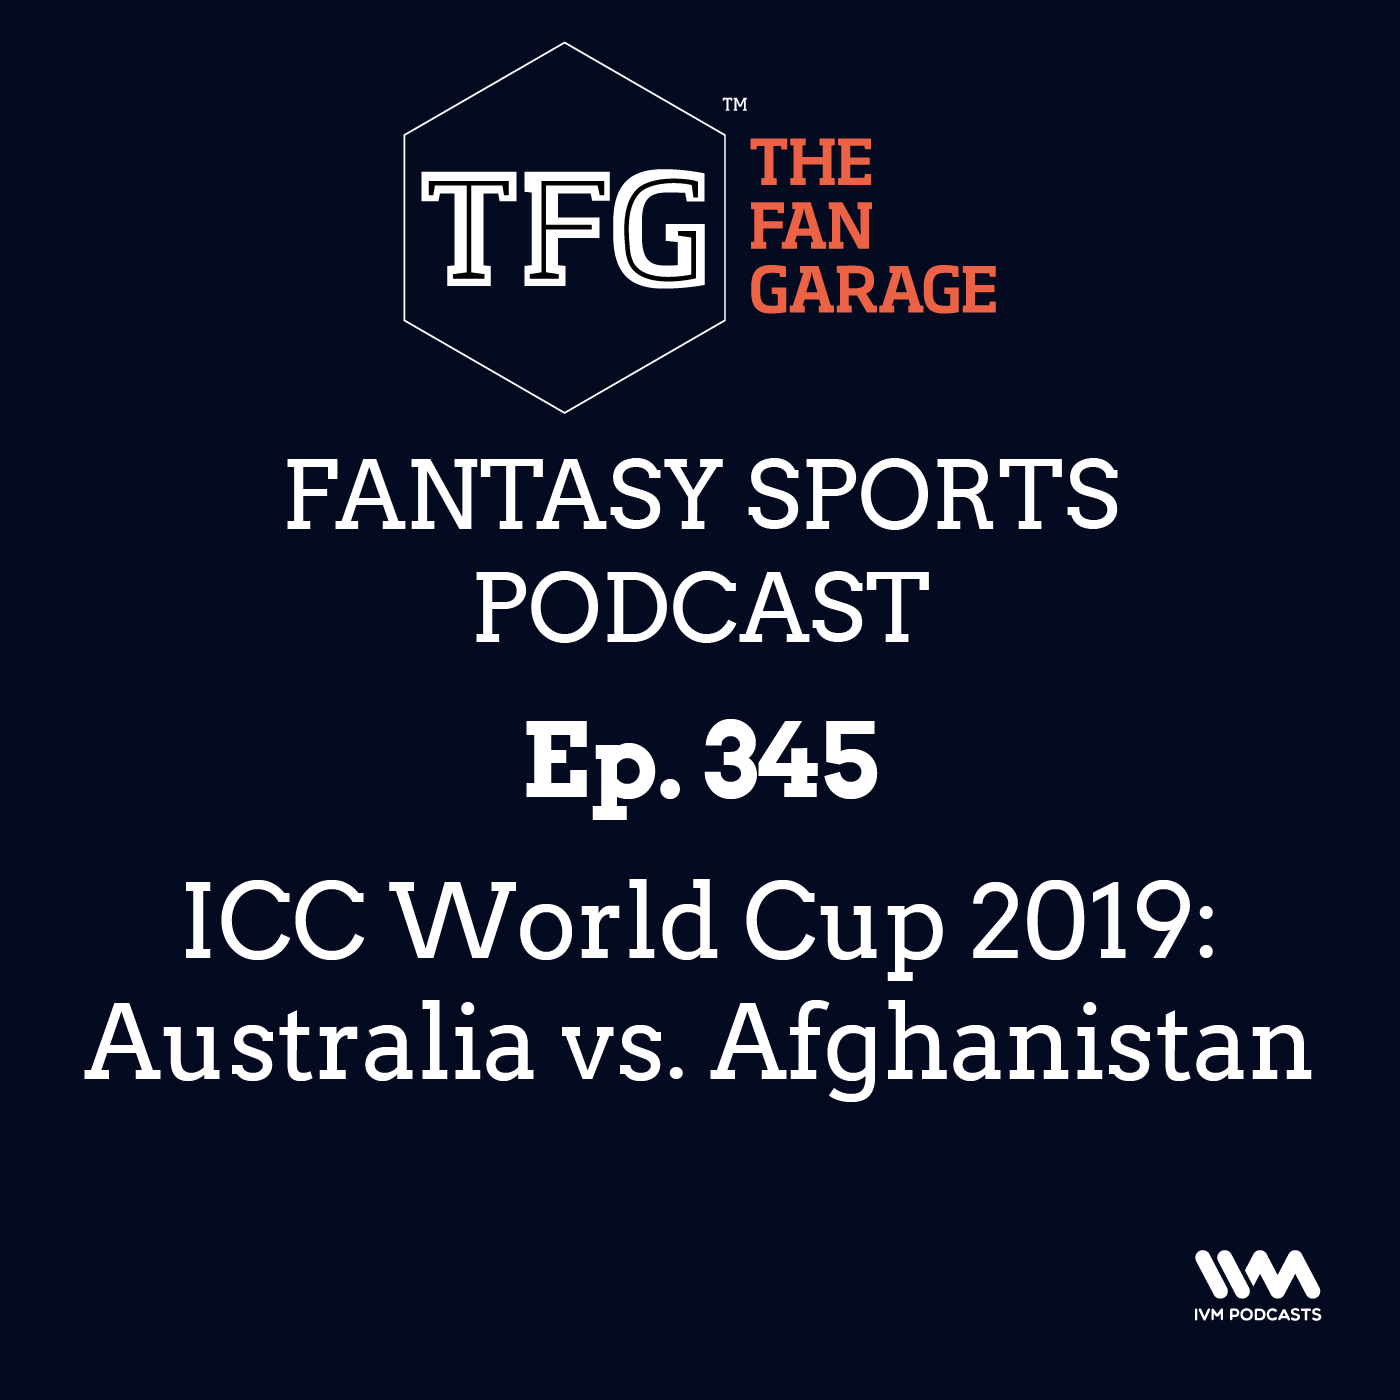 TFG Fantasy Sports Podcast Ep. 345: ICC World Cup 2019: Australia vs. Afghanistan